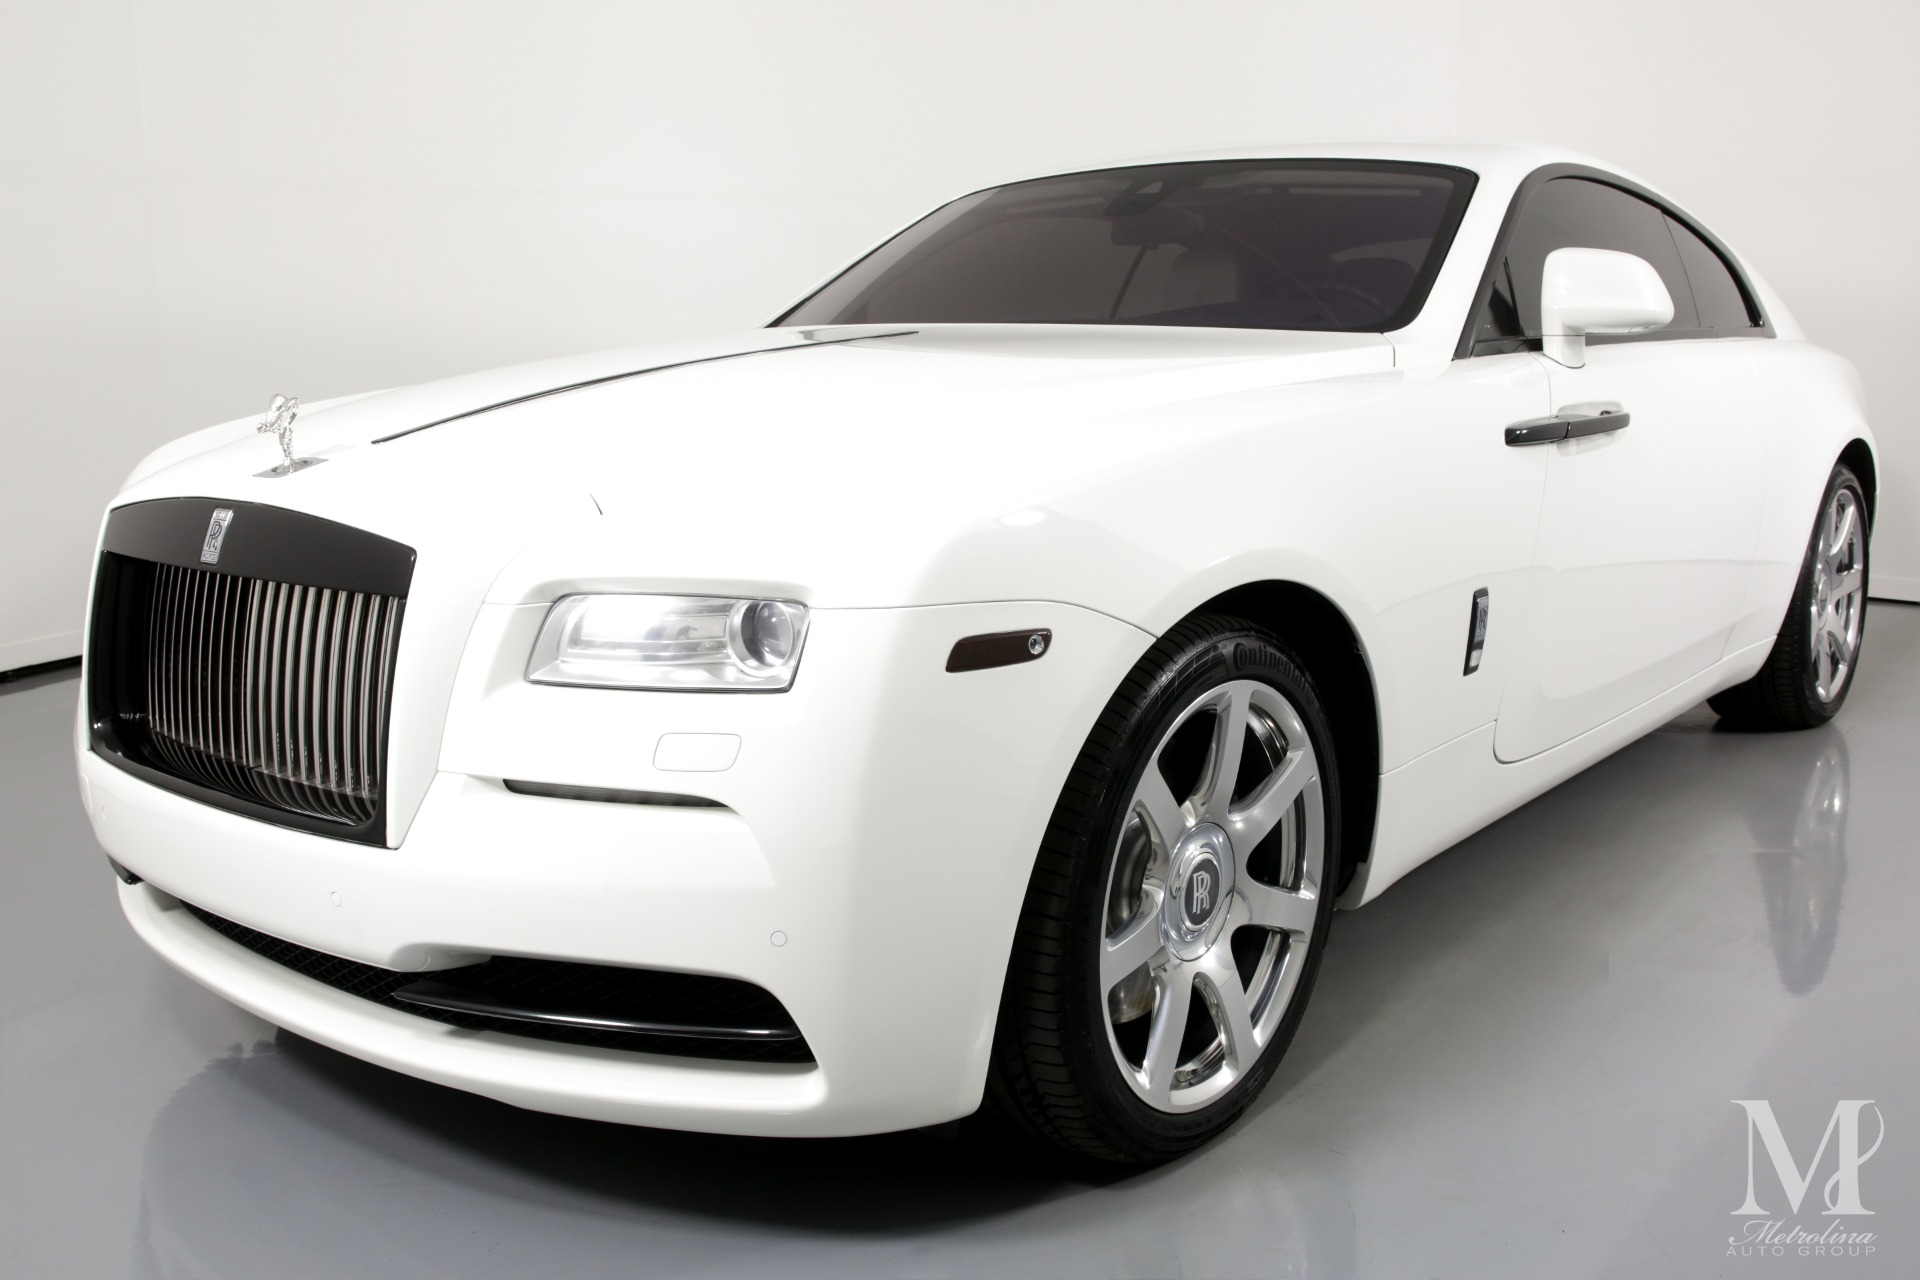 Used 2014 Rolls-Royce Wraith Base 2dr Coupe for sale Sold at Metrolina Auto Group in Charlotte NC 28217 - 4